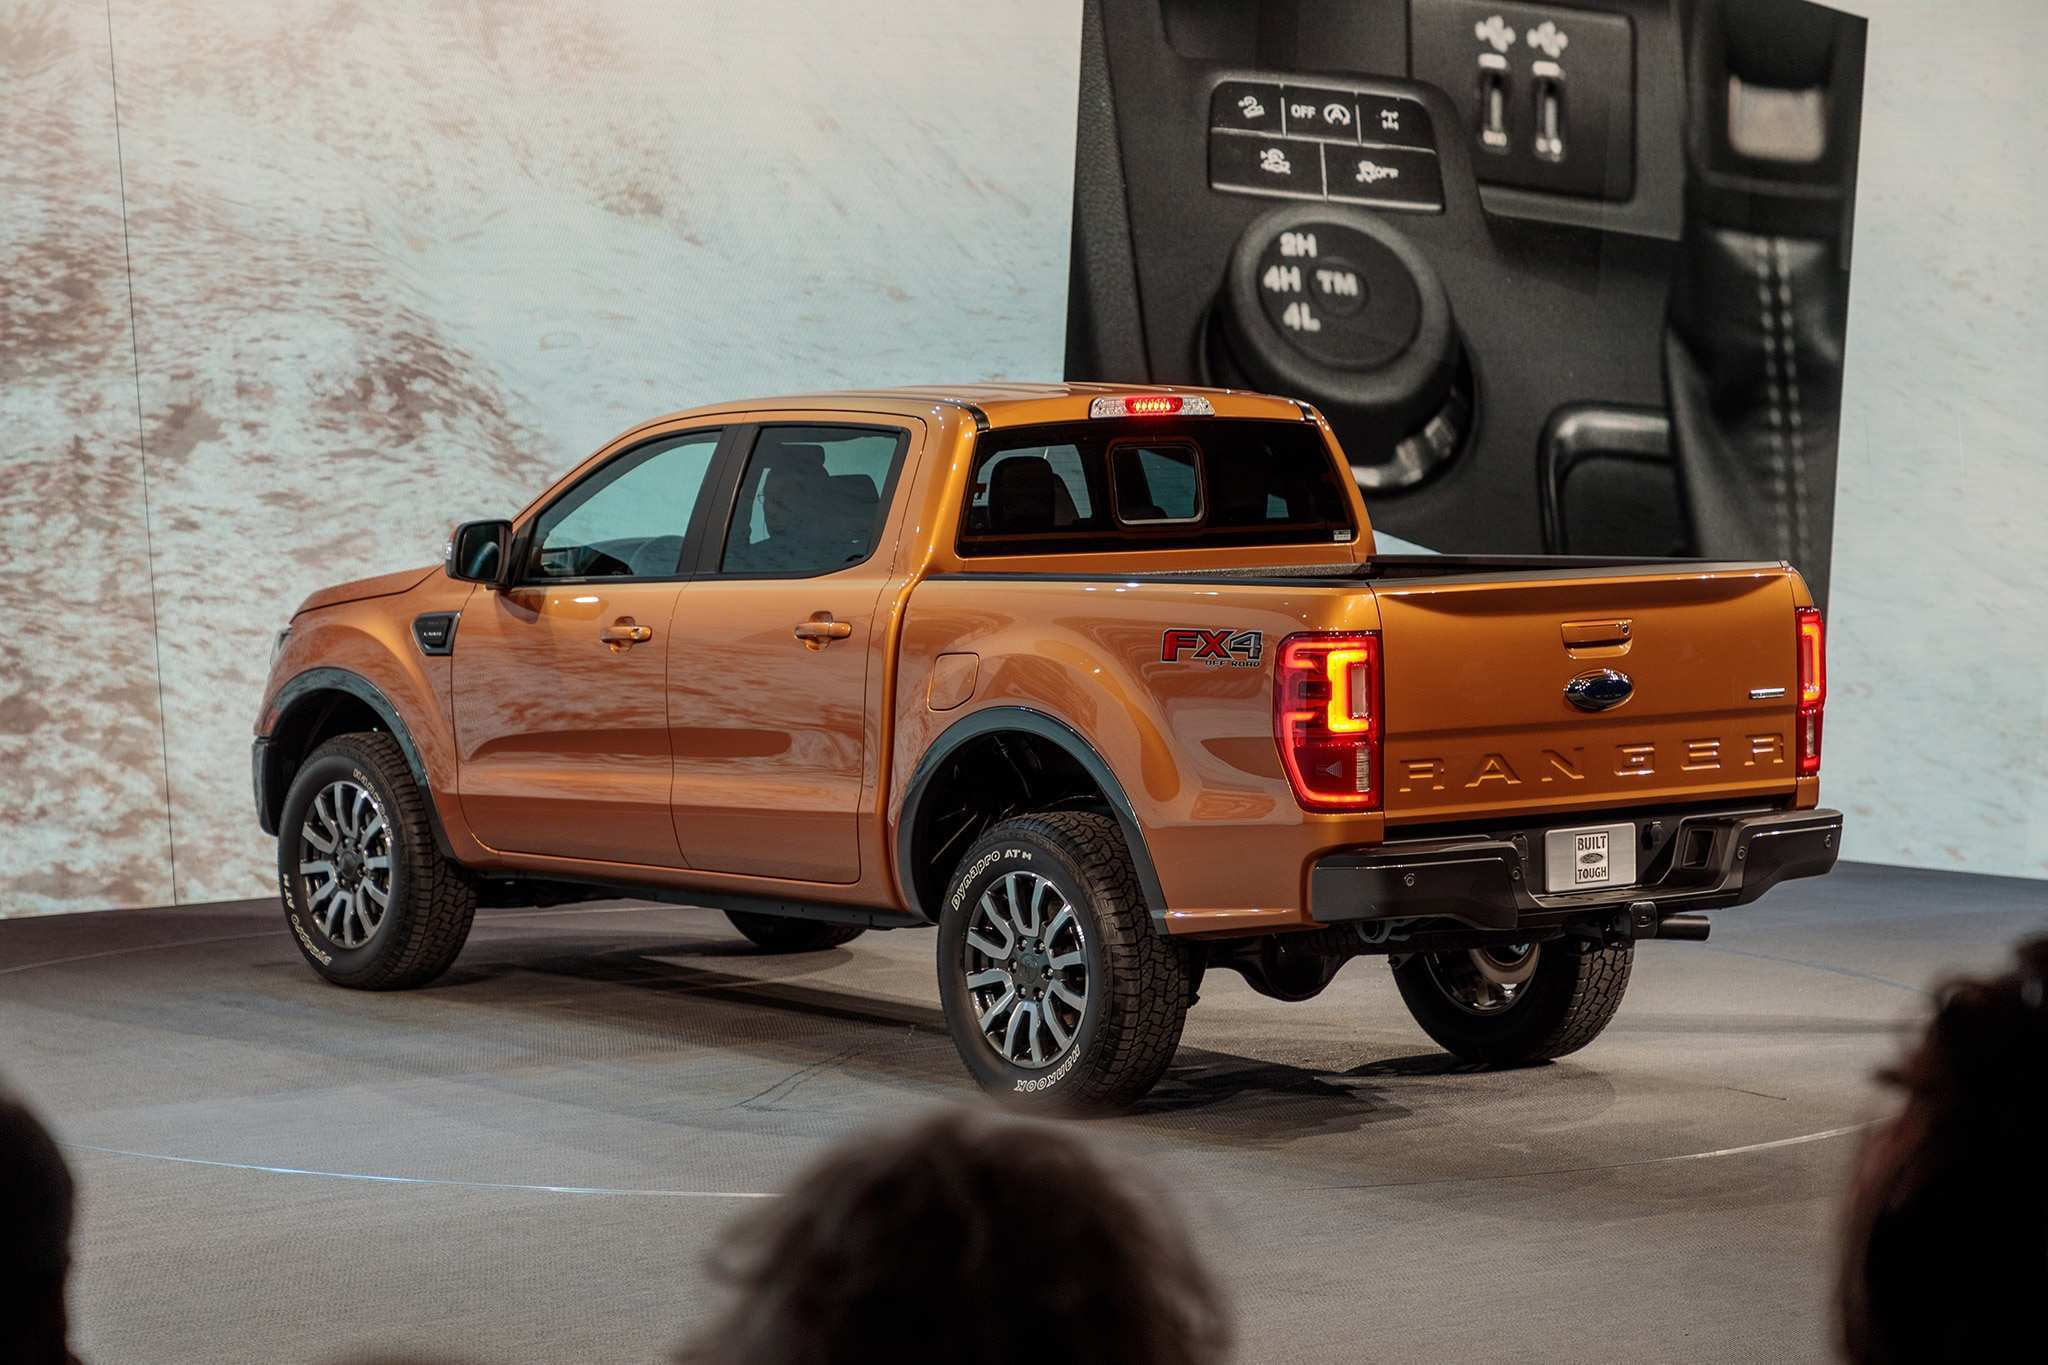 76 Concept of Ford Ranger 2019 Specs Performance And New Engine New Review by Ford Ranger 2019 Specs Performance And New Engine